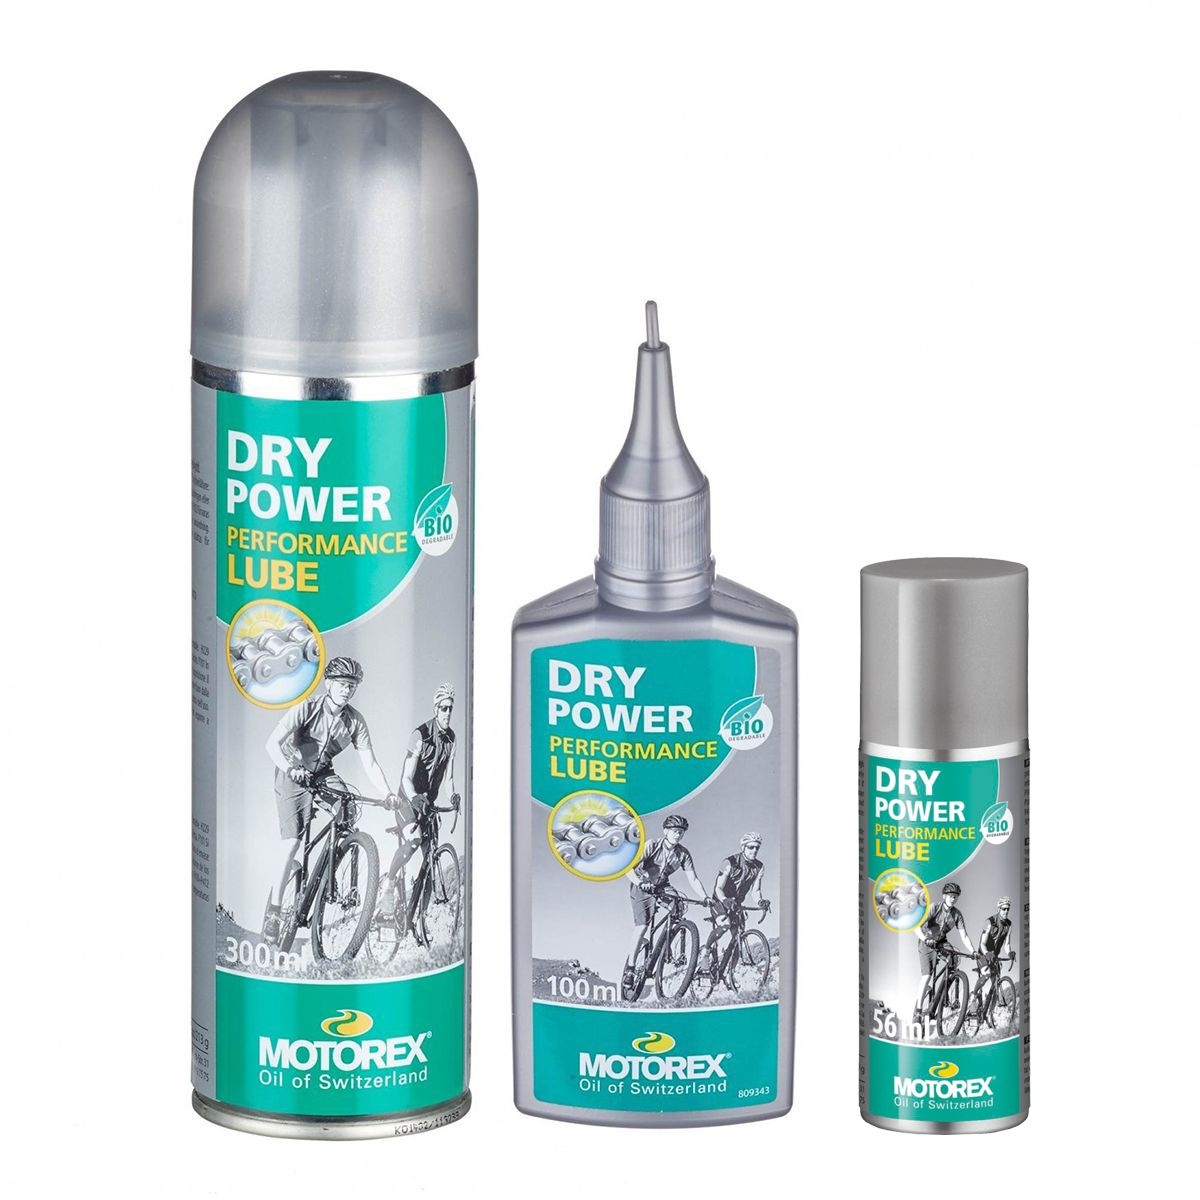 Dry Power Lube chain lubricant